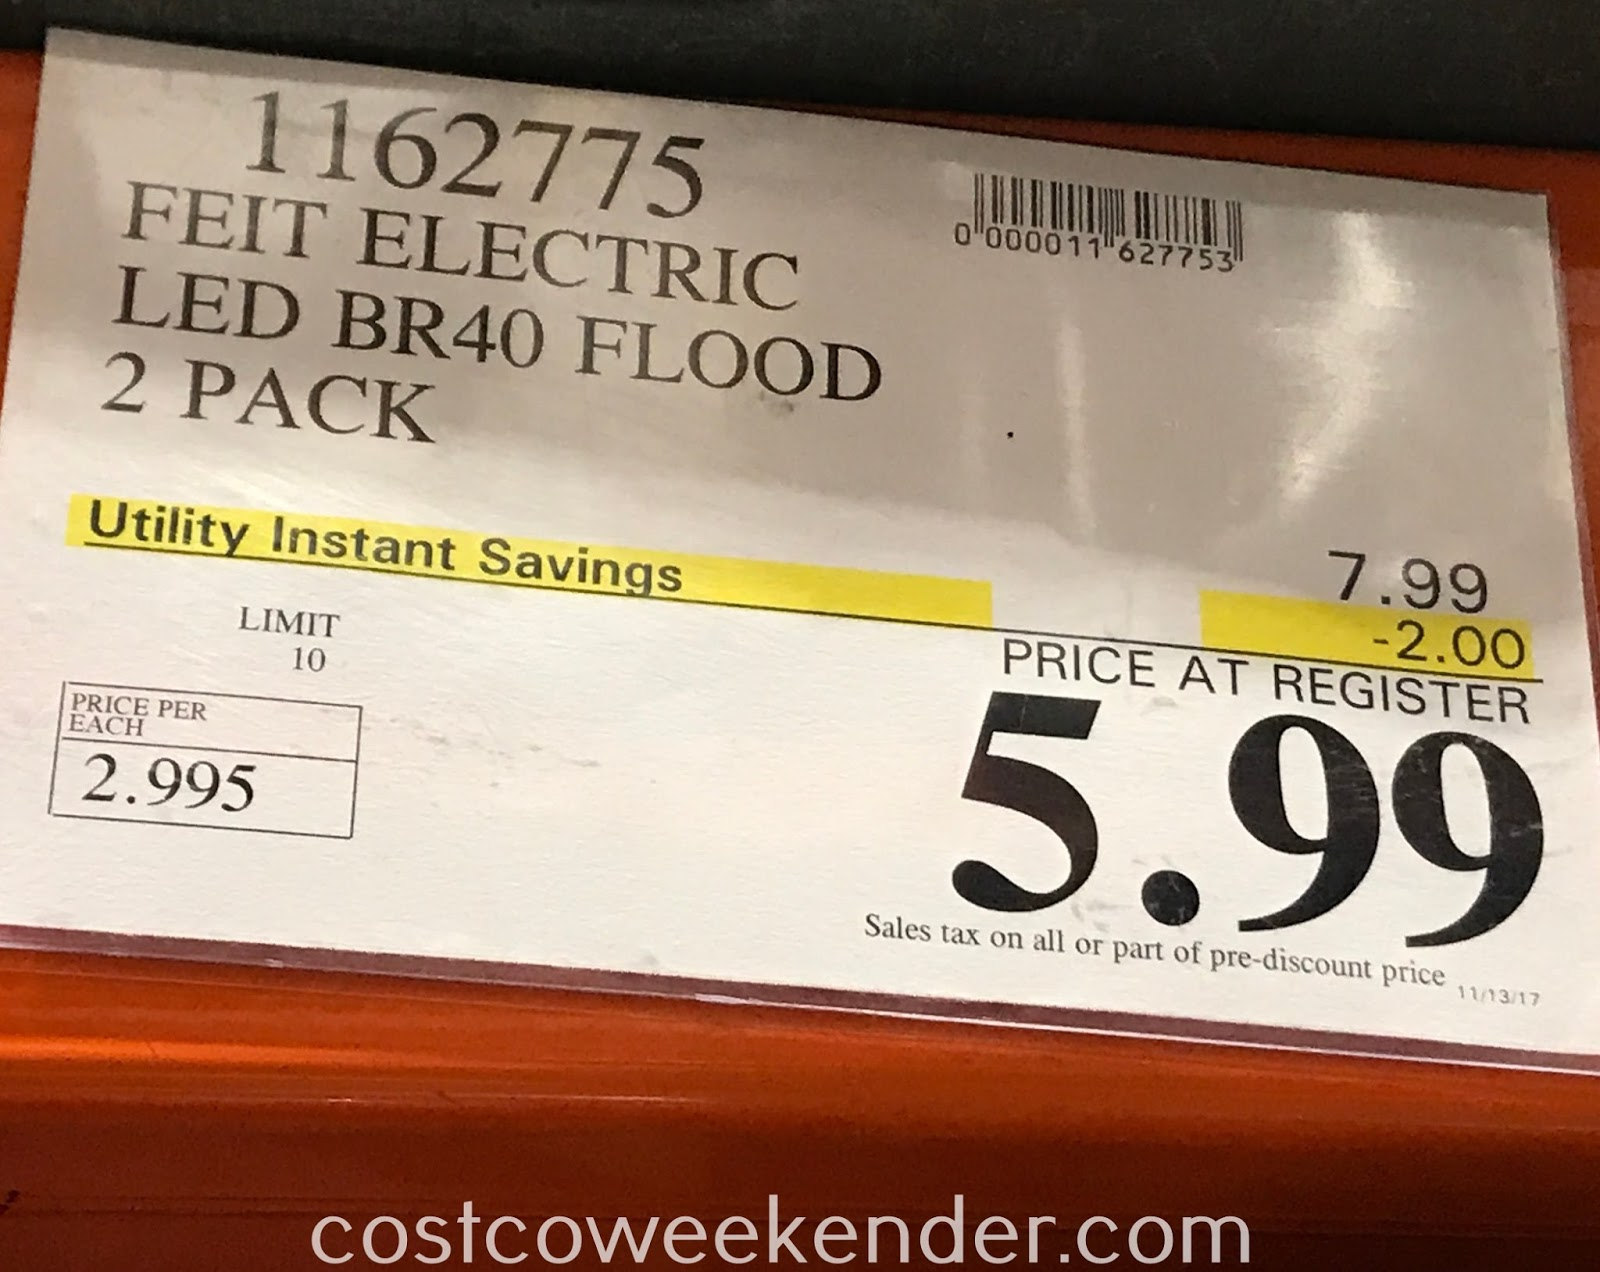 Deal for the 2 pack of Feit Electric LED BR40 Flood Lights at Costco